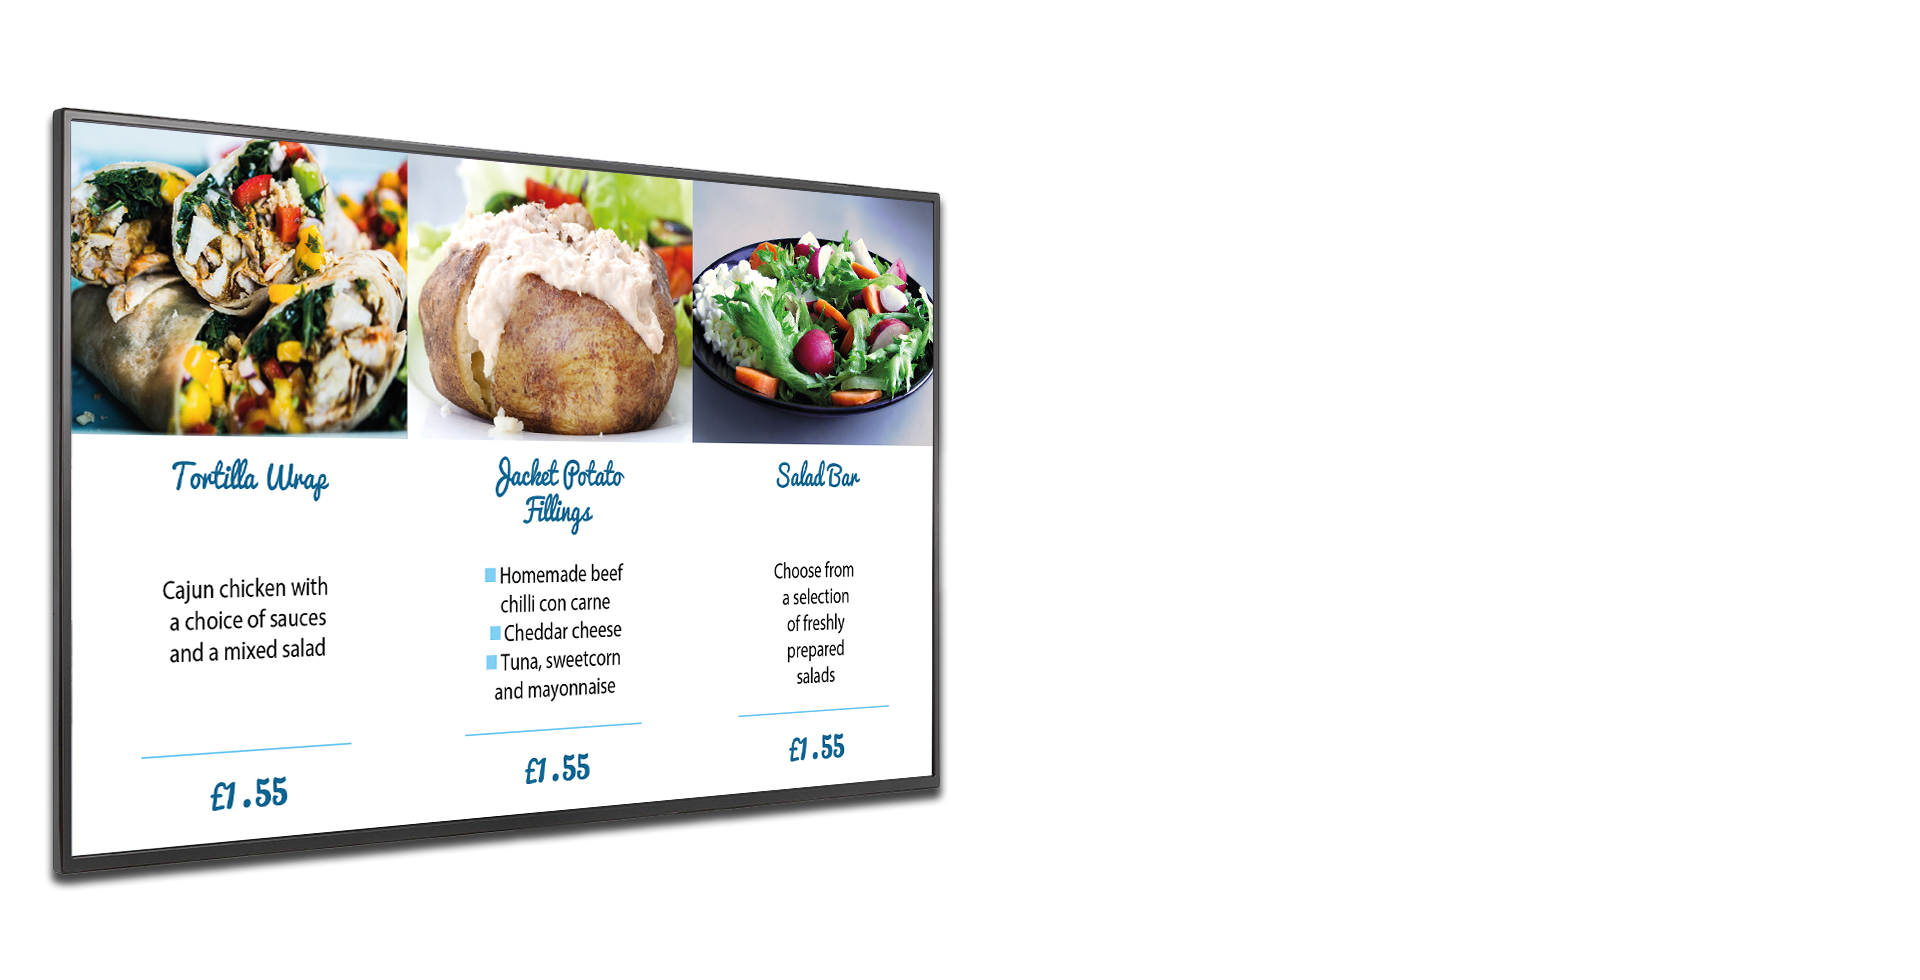 Streetly School digital signage menu board